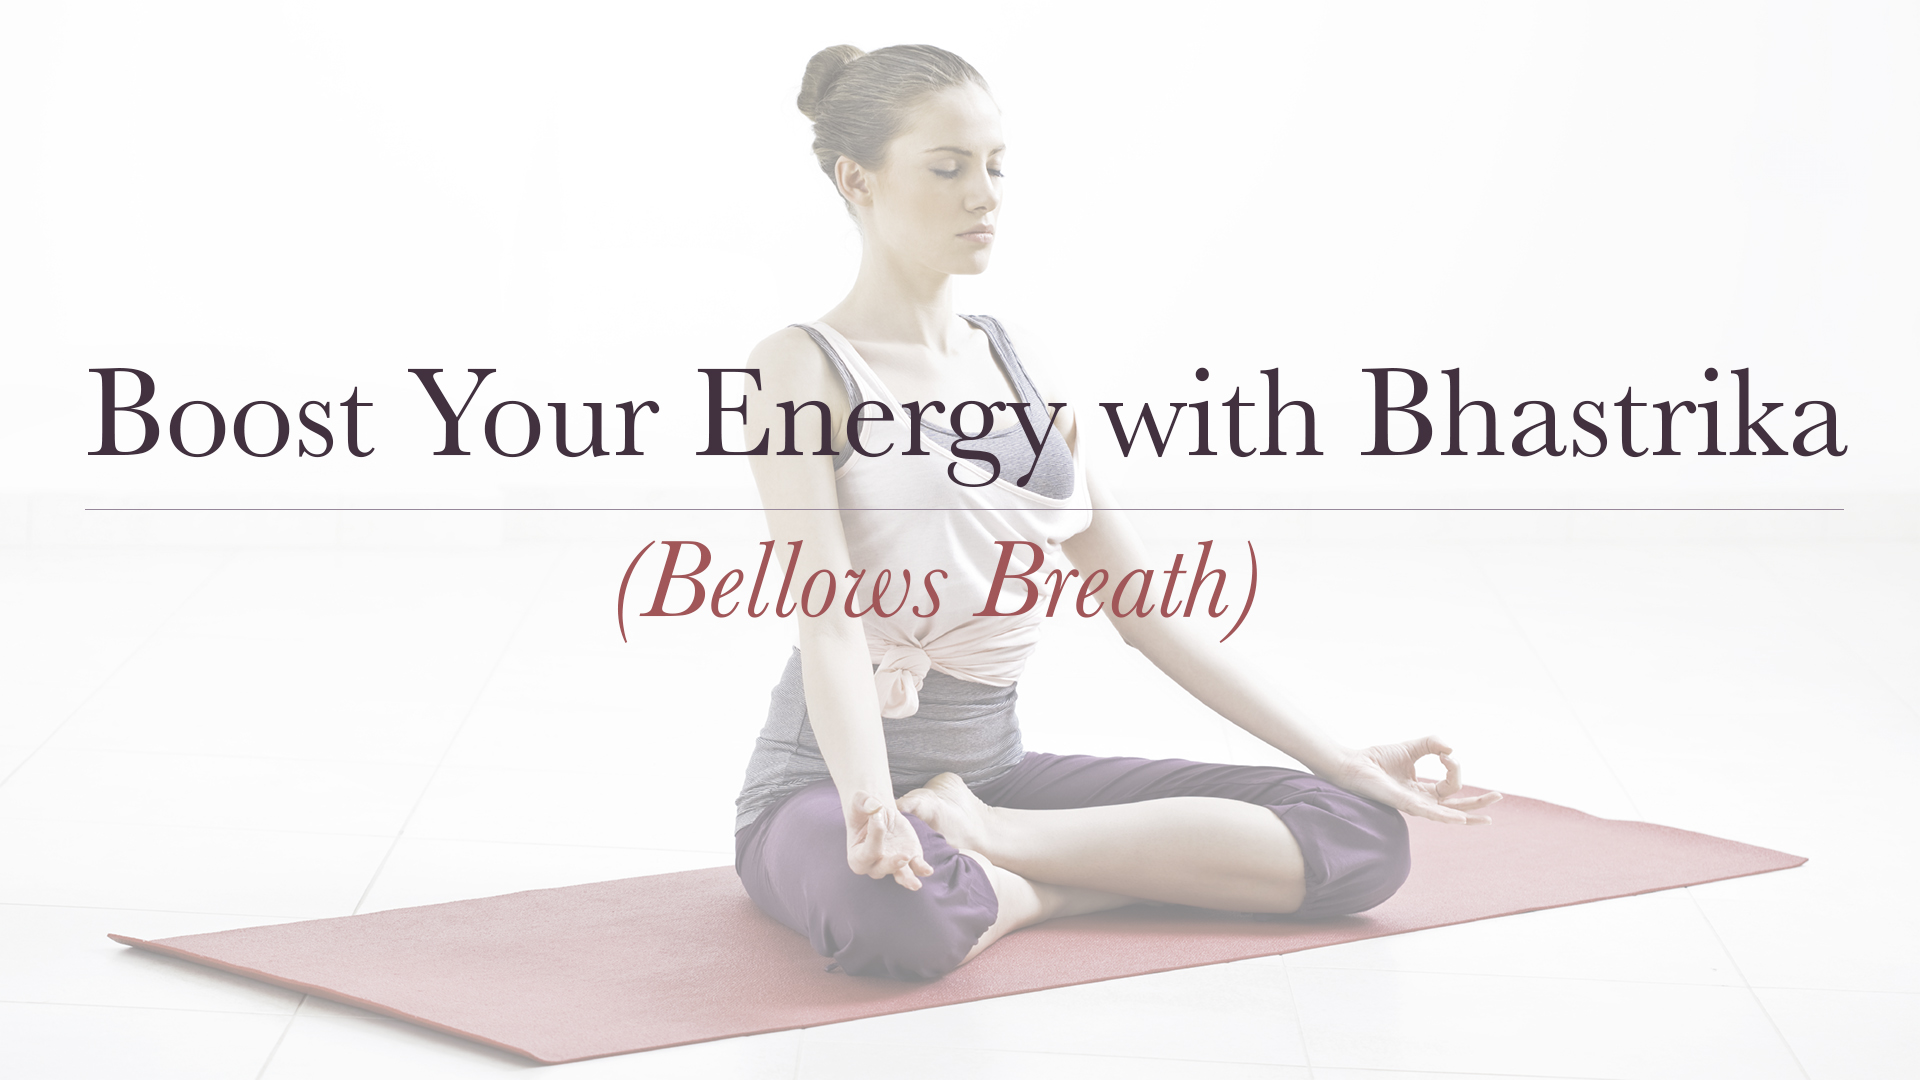 Boost Your Energy with Bhastrika (Bellows Breath)